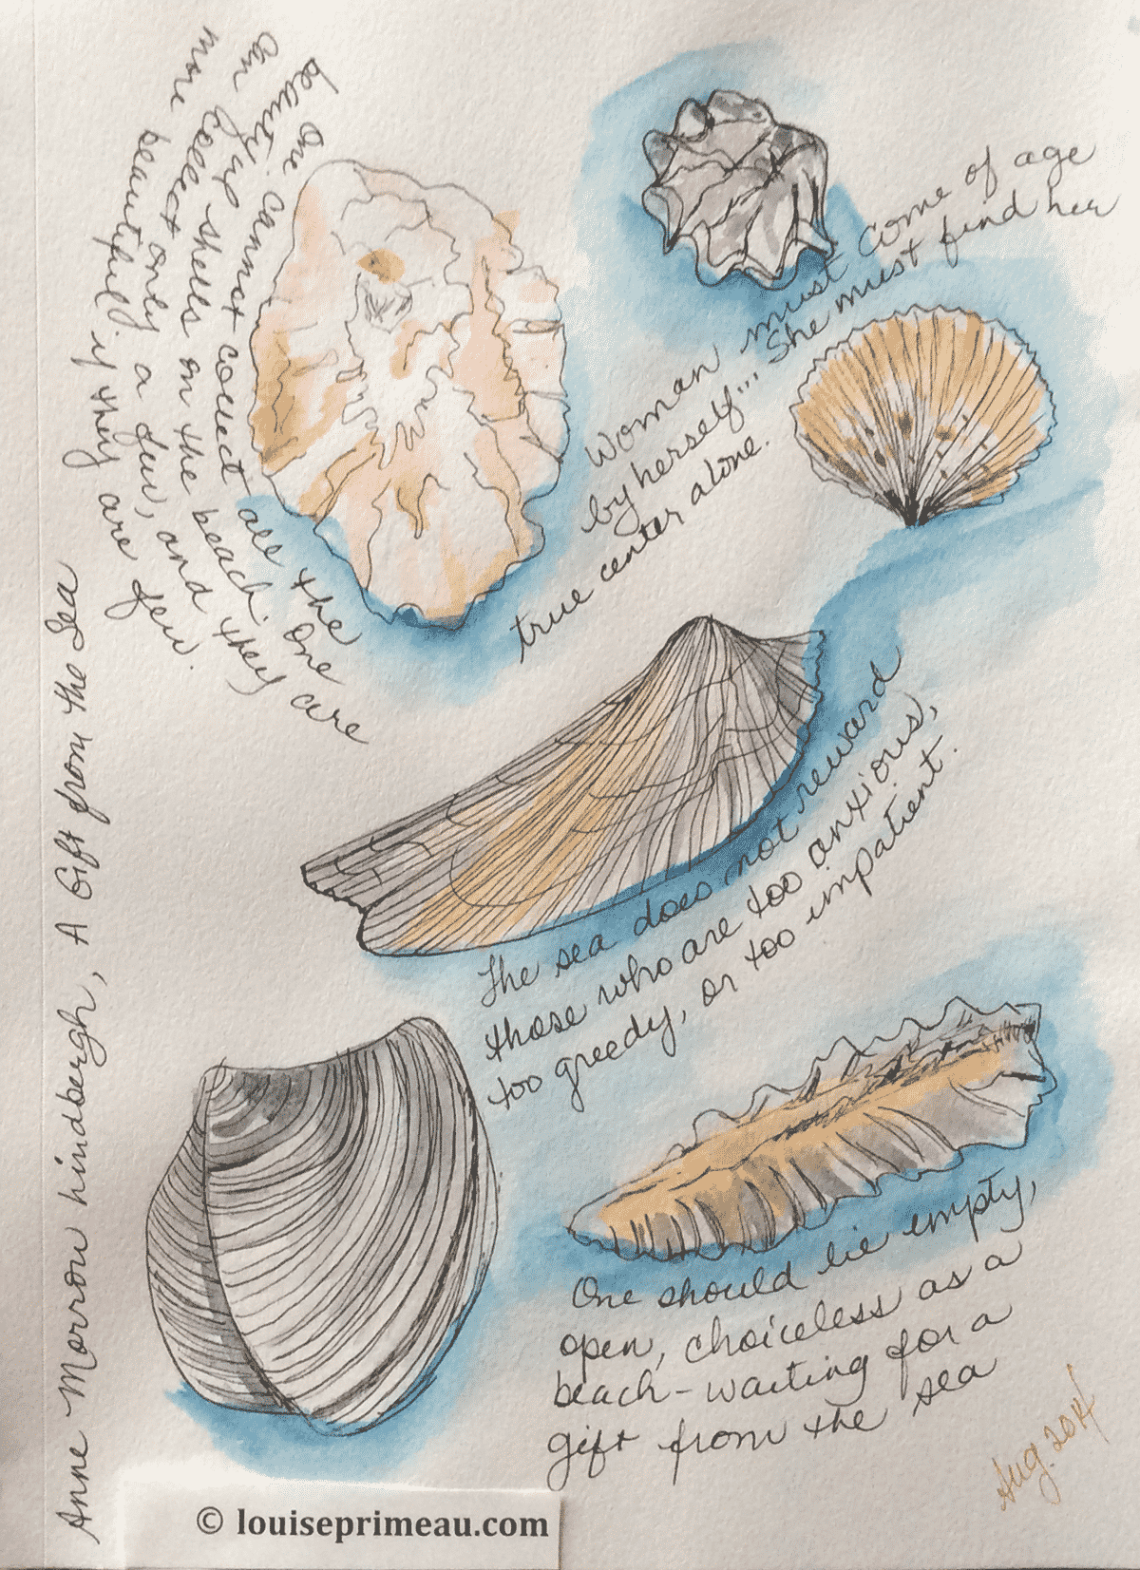 seashell sketch with quotations from Gift from the Sea